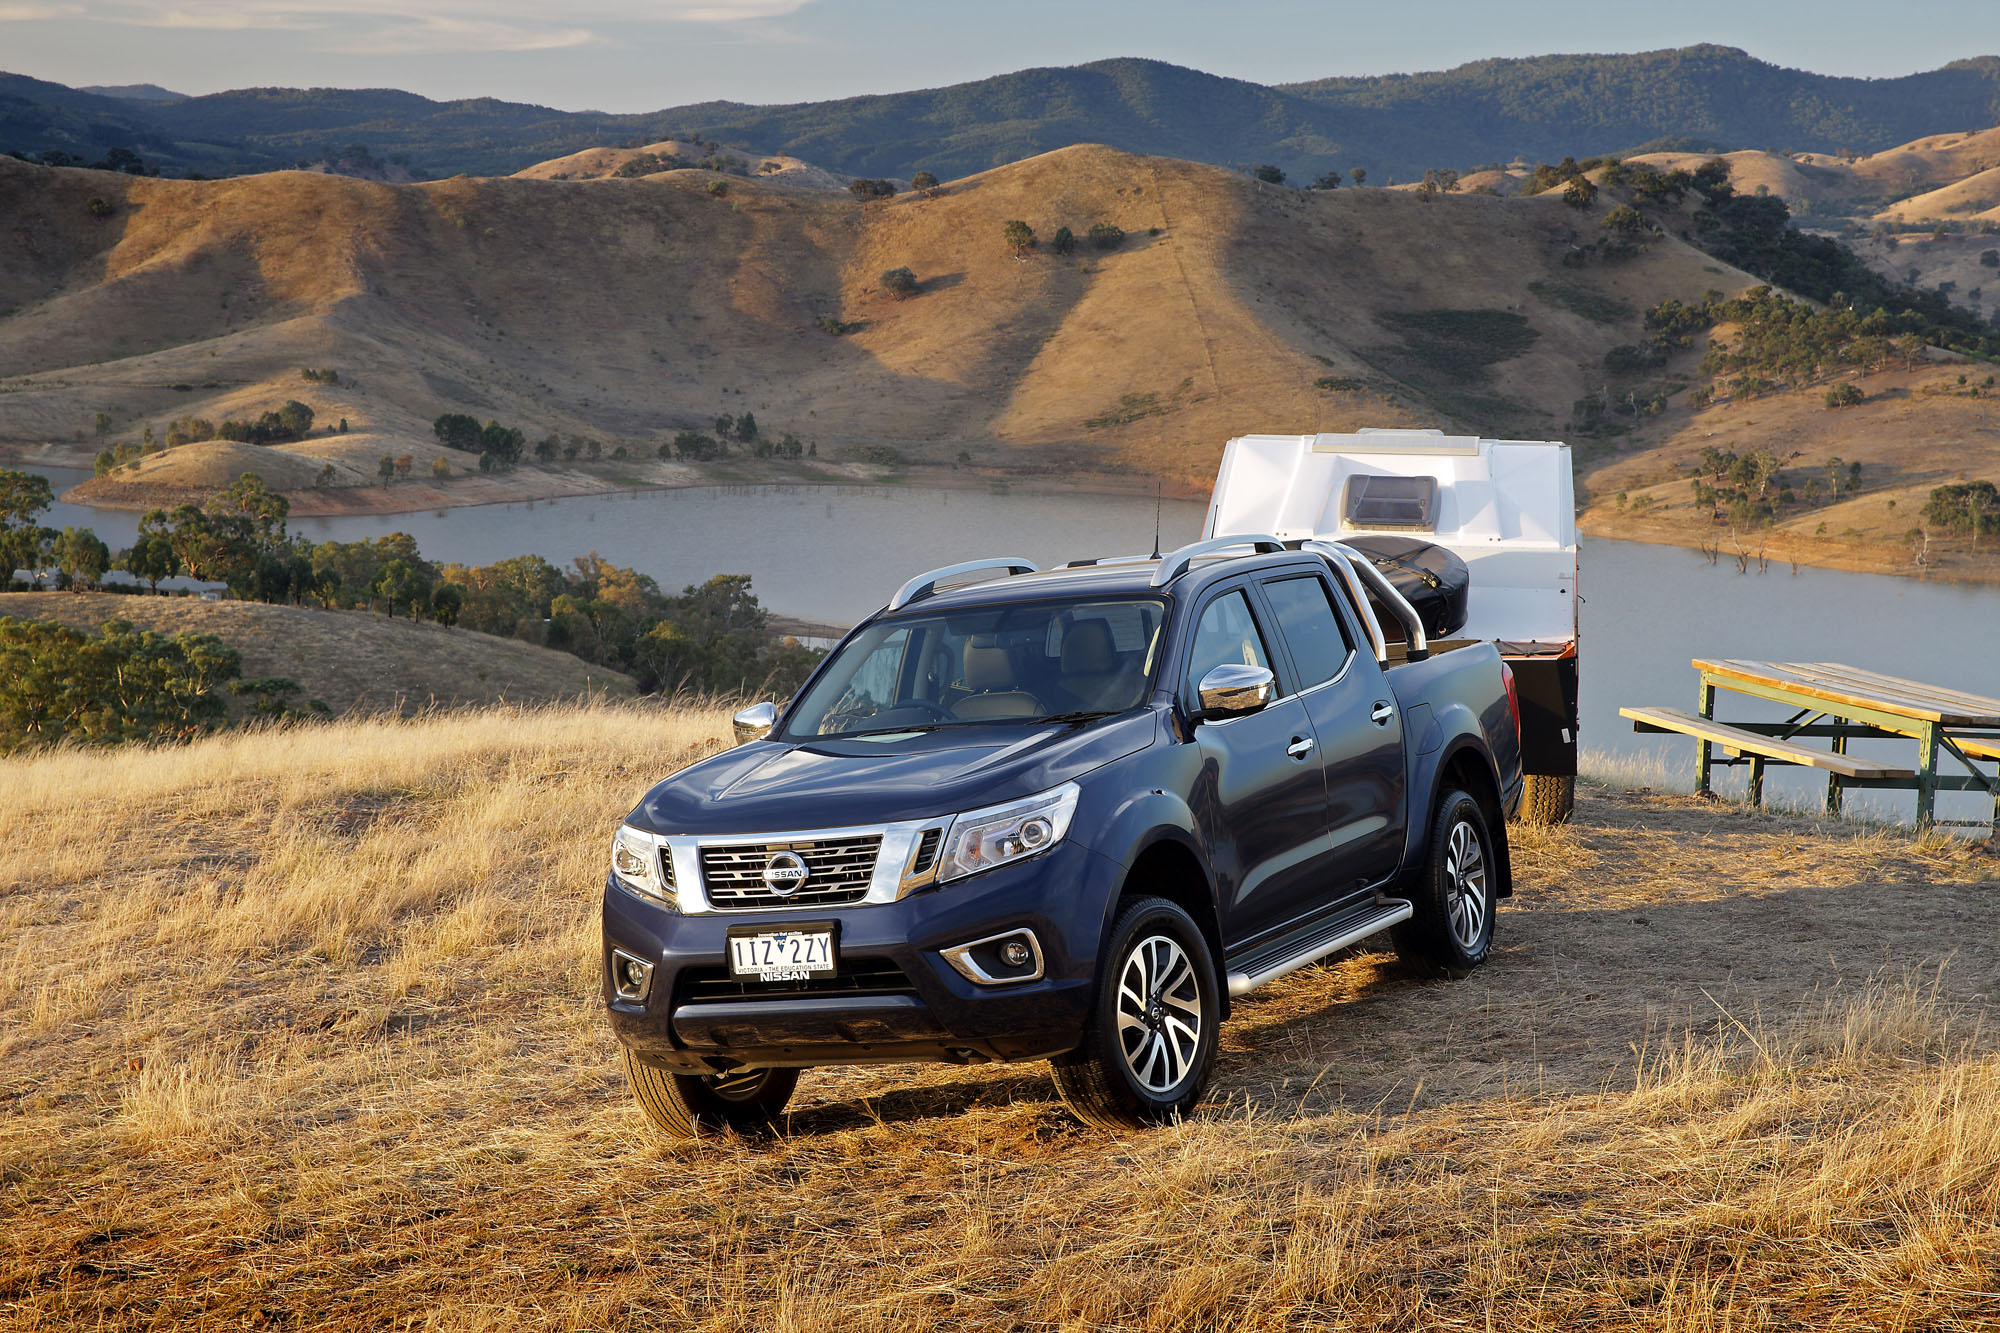 2017 nissan navara series ii dual cab review caradvice. Black Bedroom Furniture Sets. Home Design Ideas